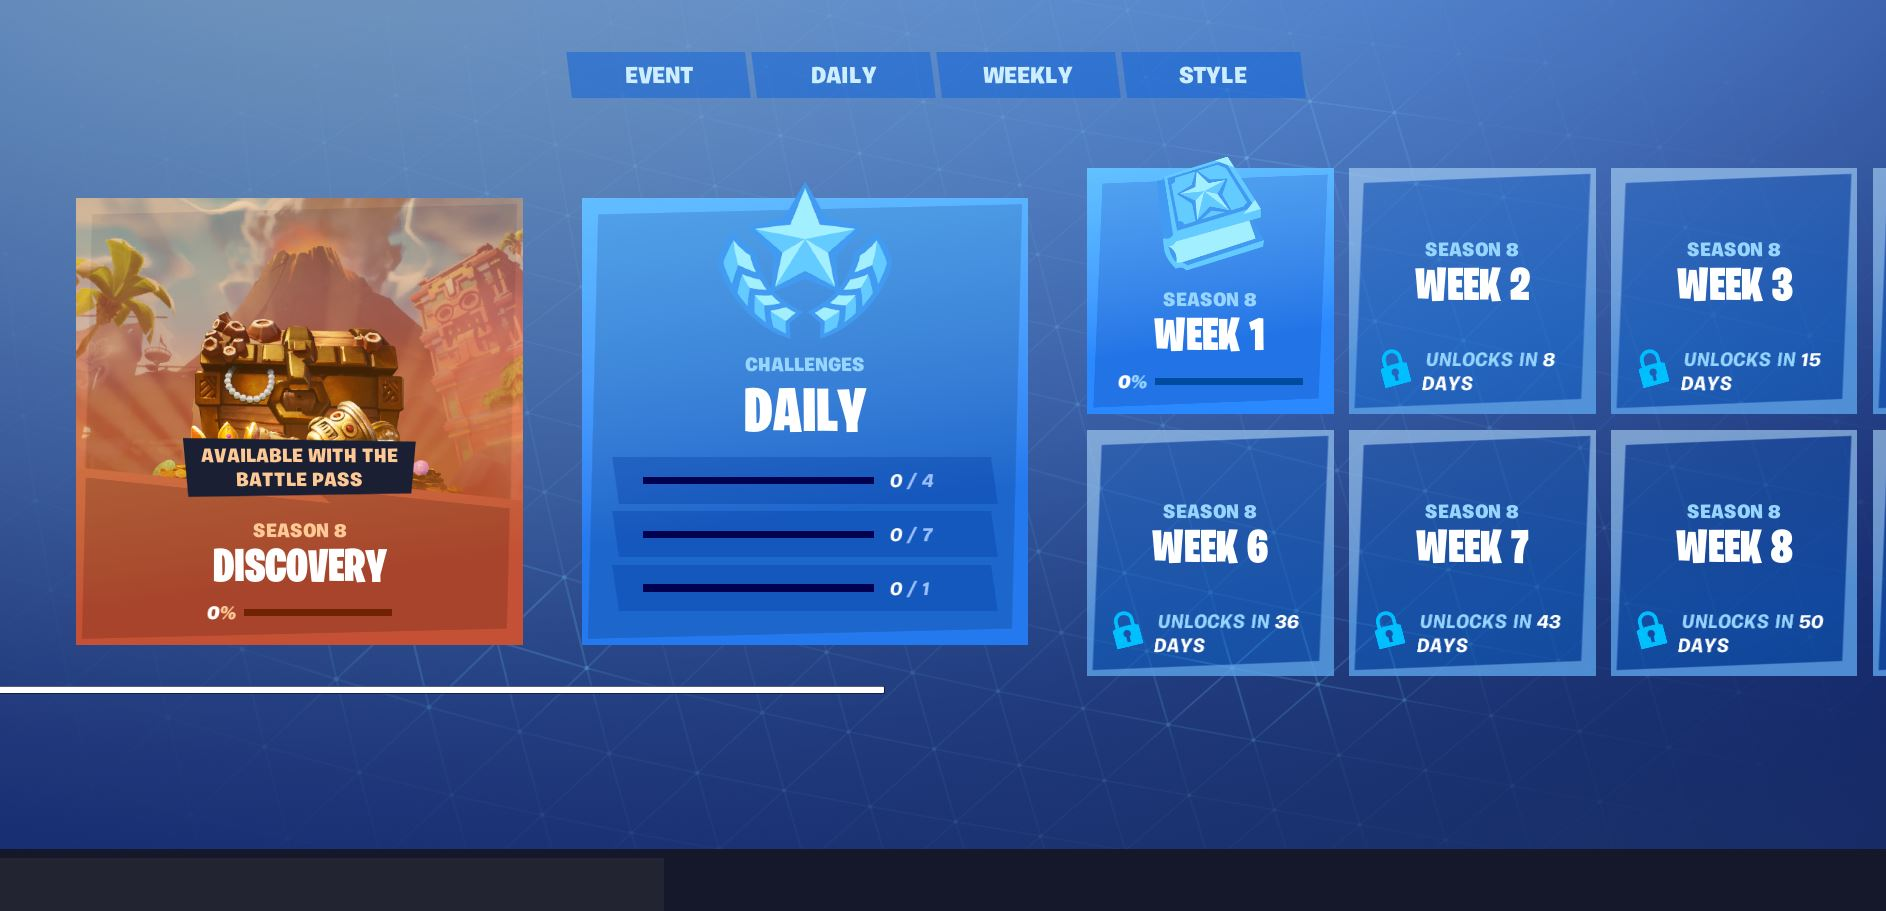 Fortnite Challenges new UI